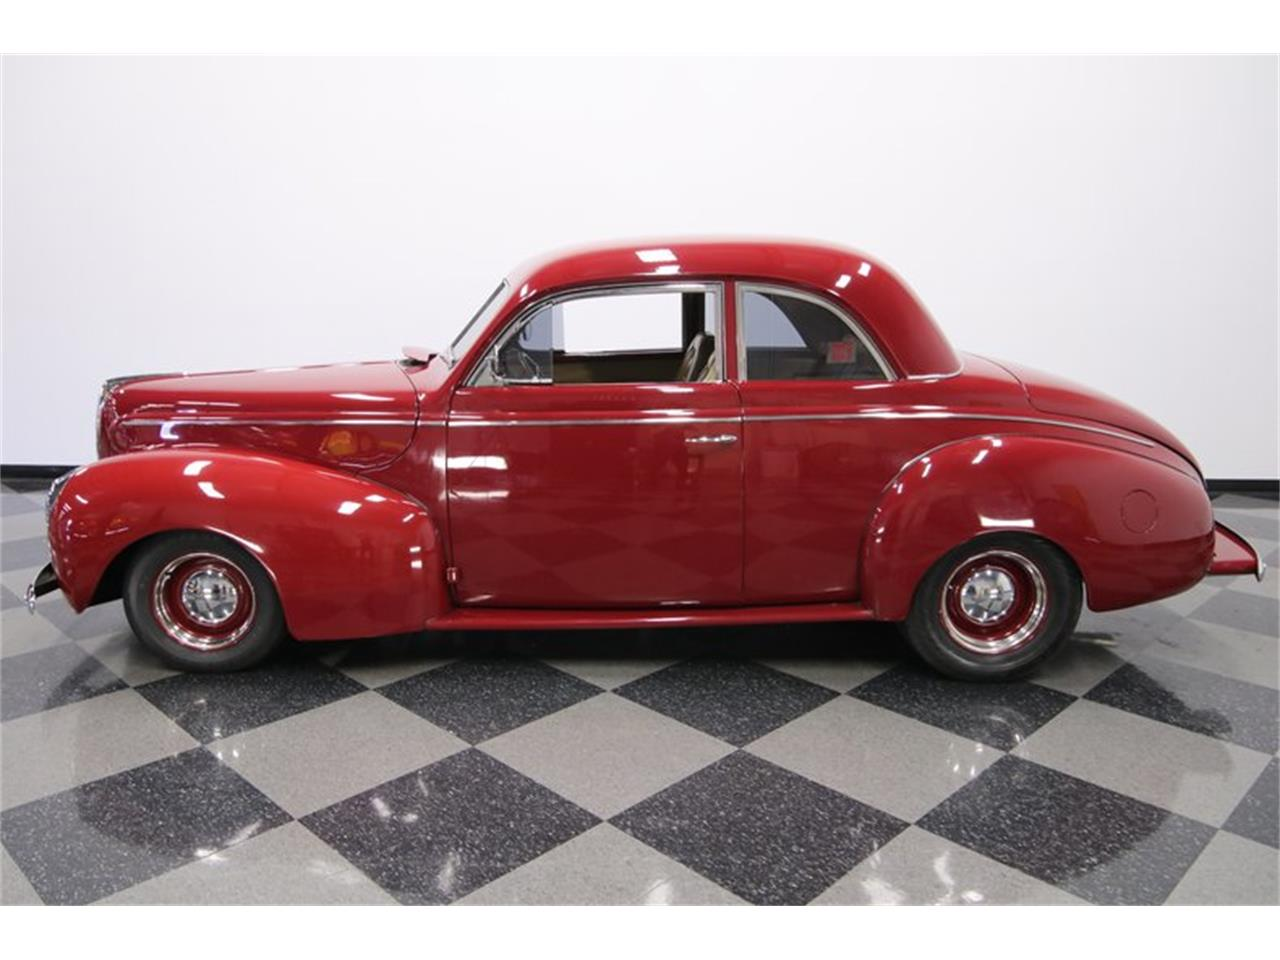 1940 Mercury Coupe for sale in Lutz, FL – photo 2